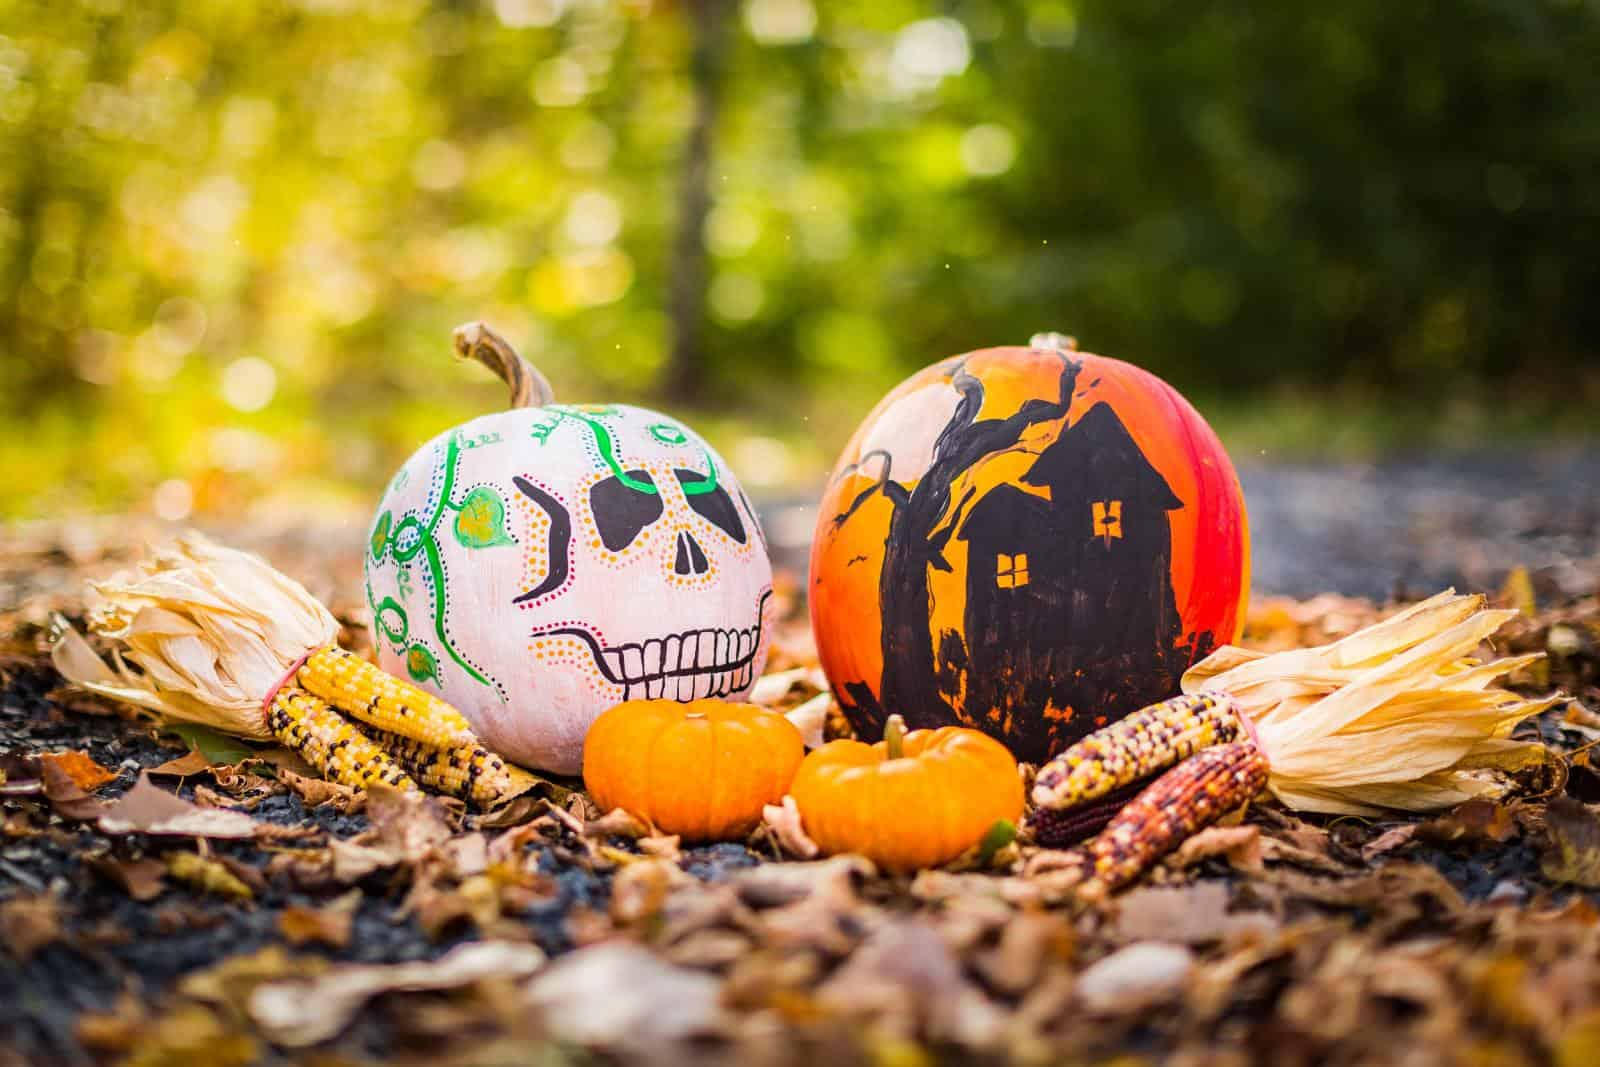 Spooky Halloween Tours when Glamping in Dorset